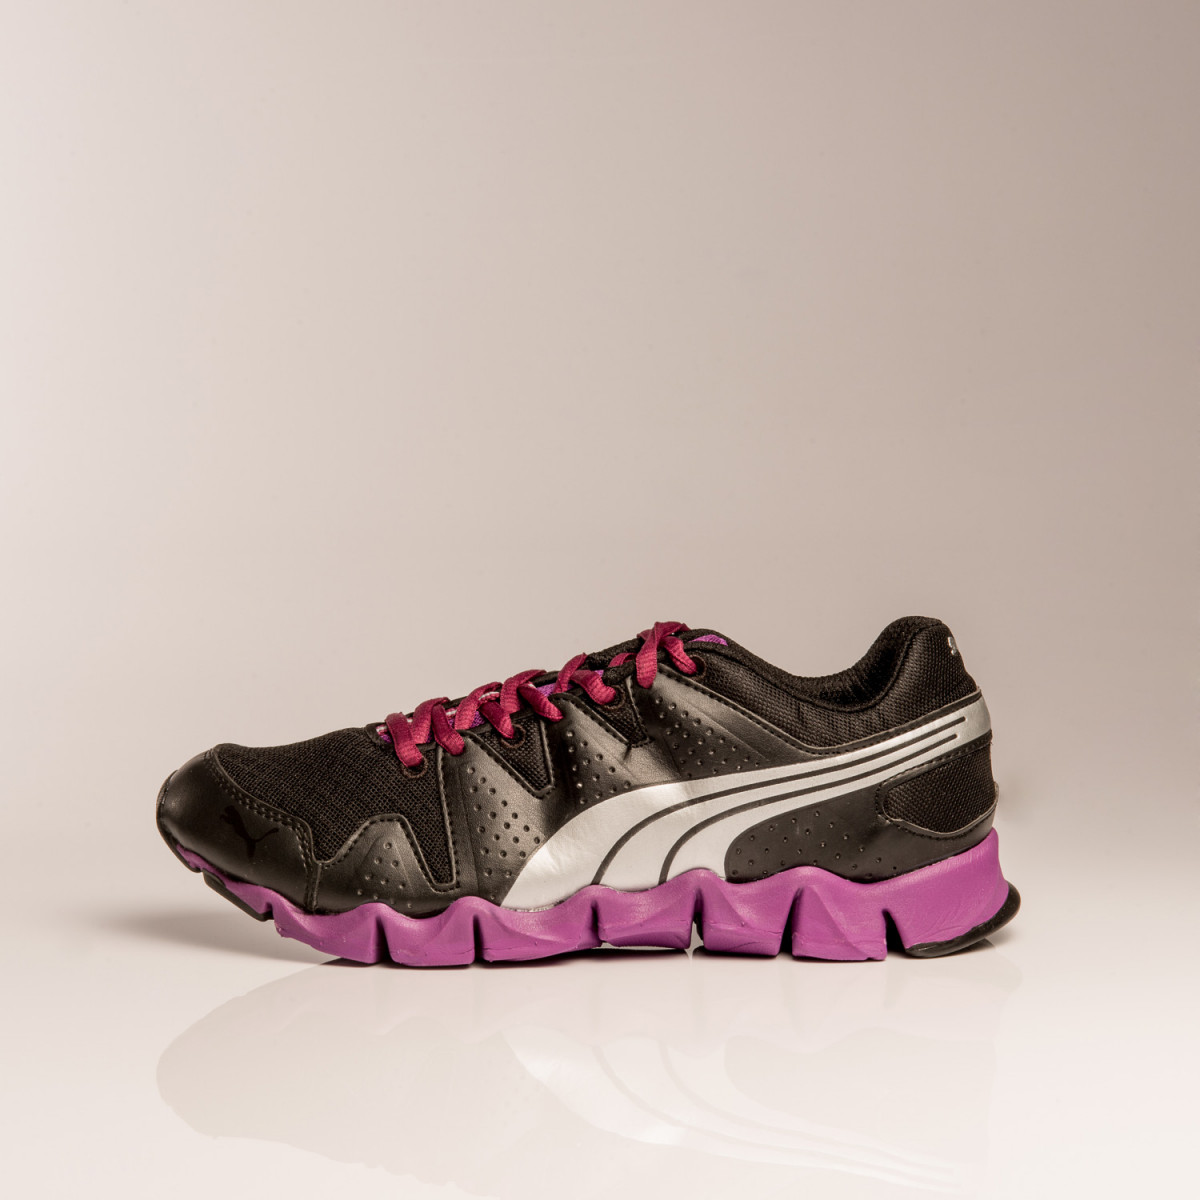 ZAPATILLAS PUMA SHINTAI RUNNERS WNS